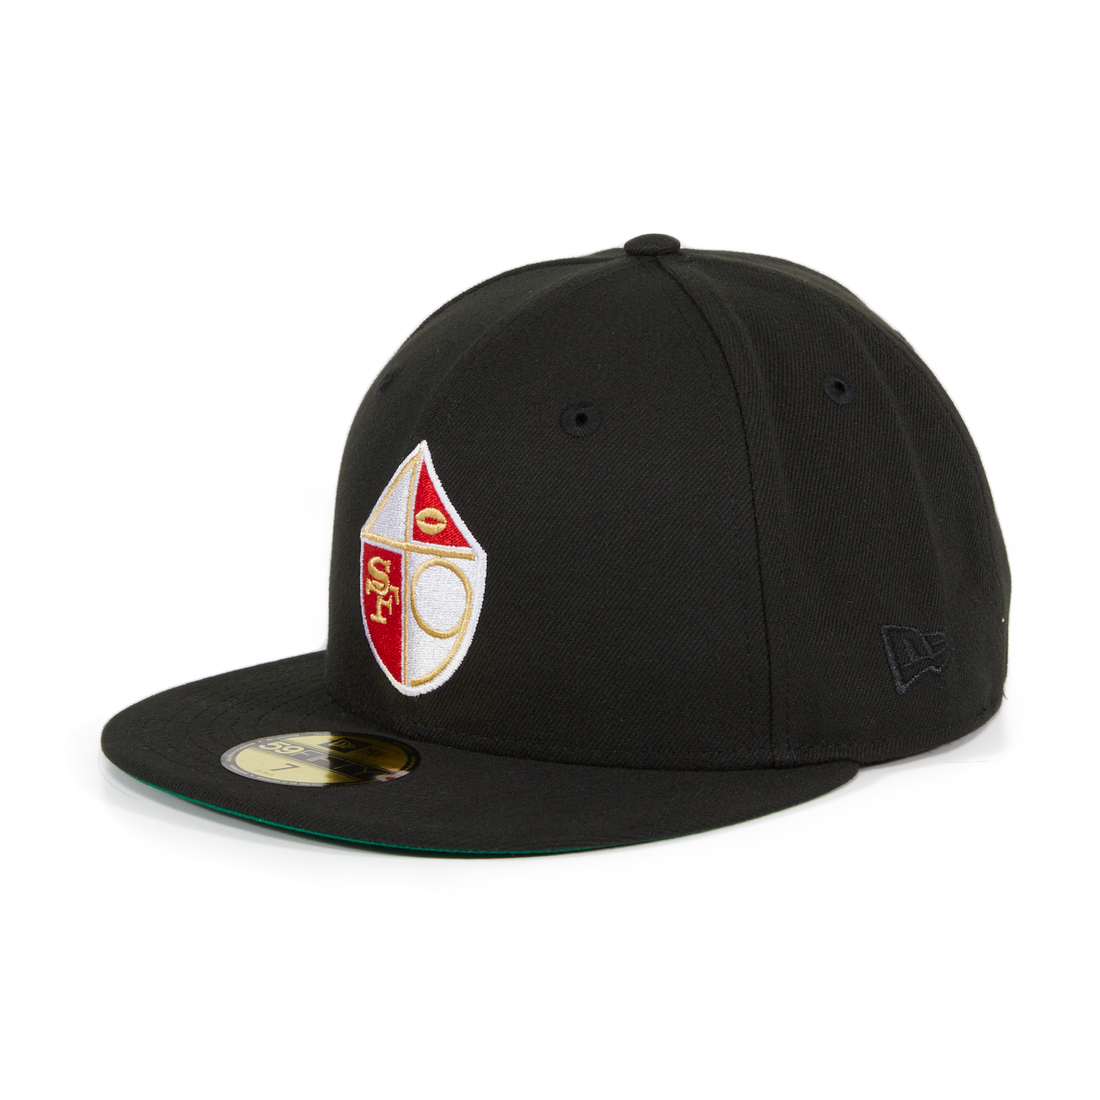 Exclusive New Era 59Fifty San Francisco 49ers Shield Hat - Black ... 4ae1e3d5ad1